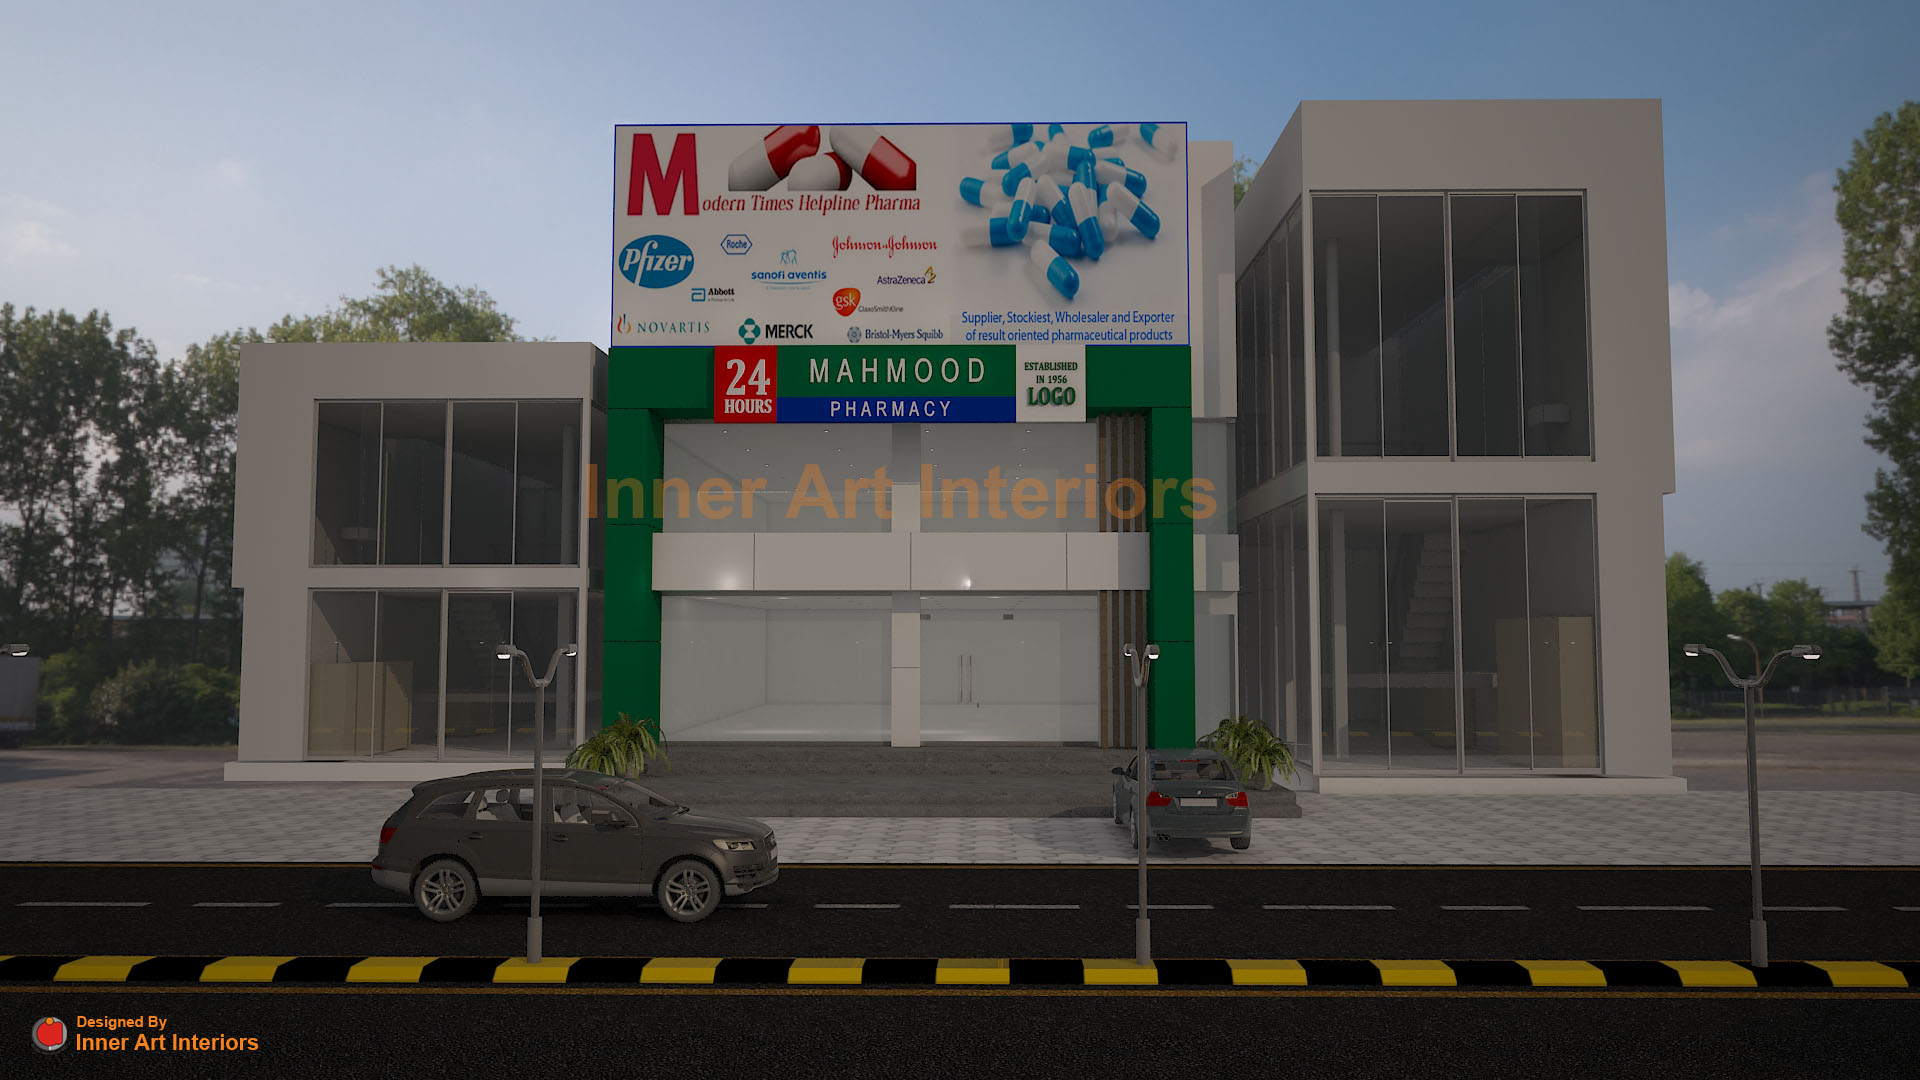 mahmood pharmacy